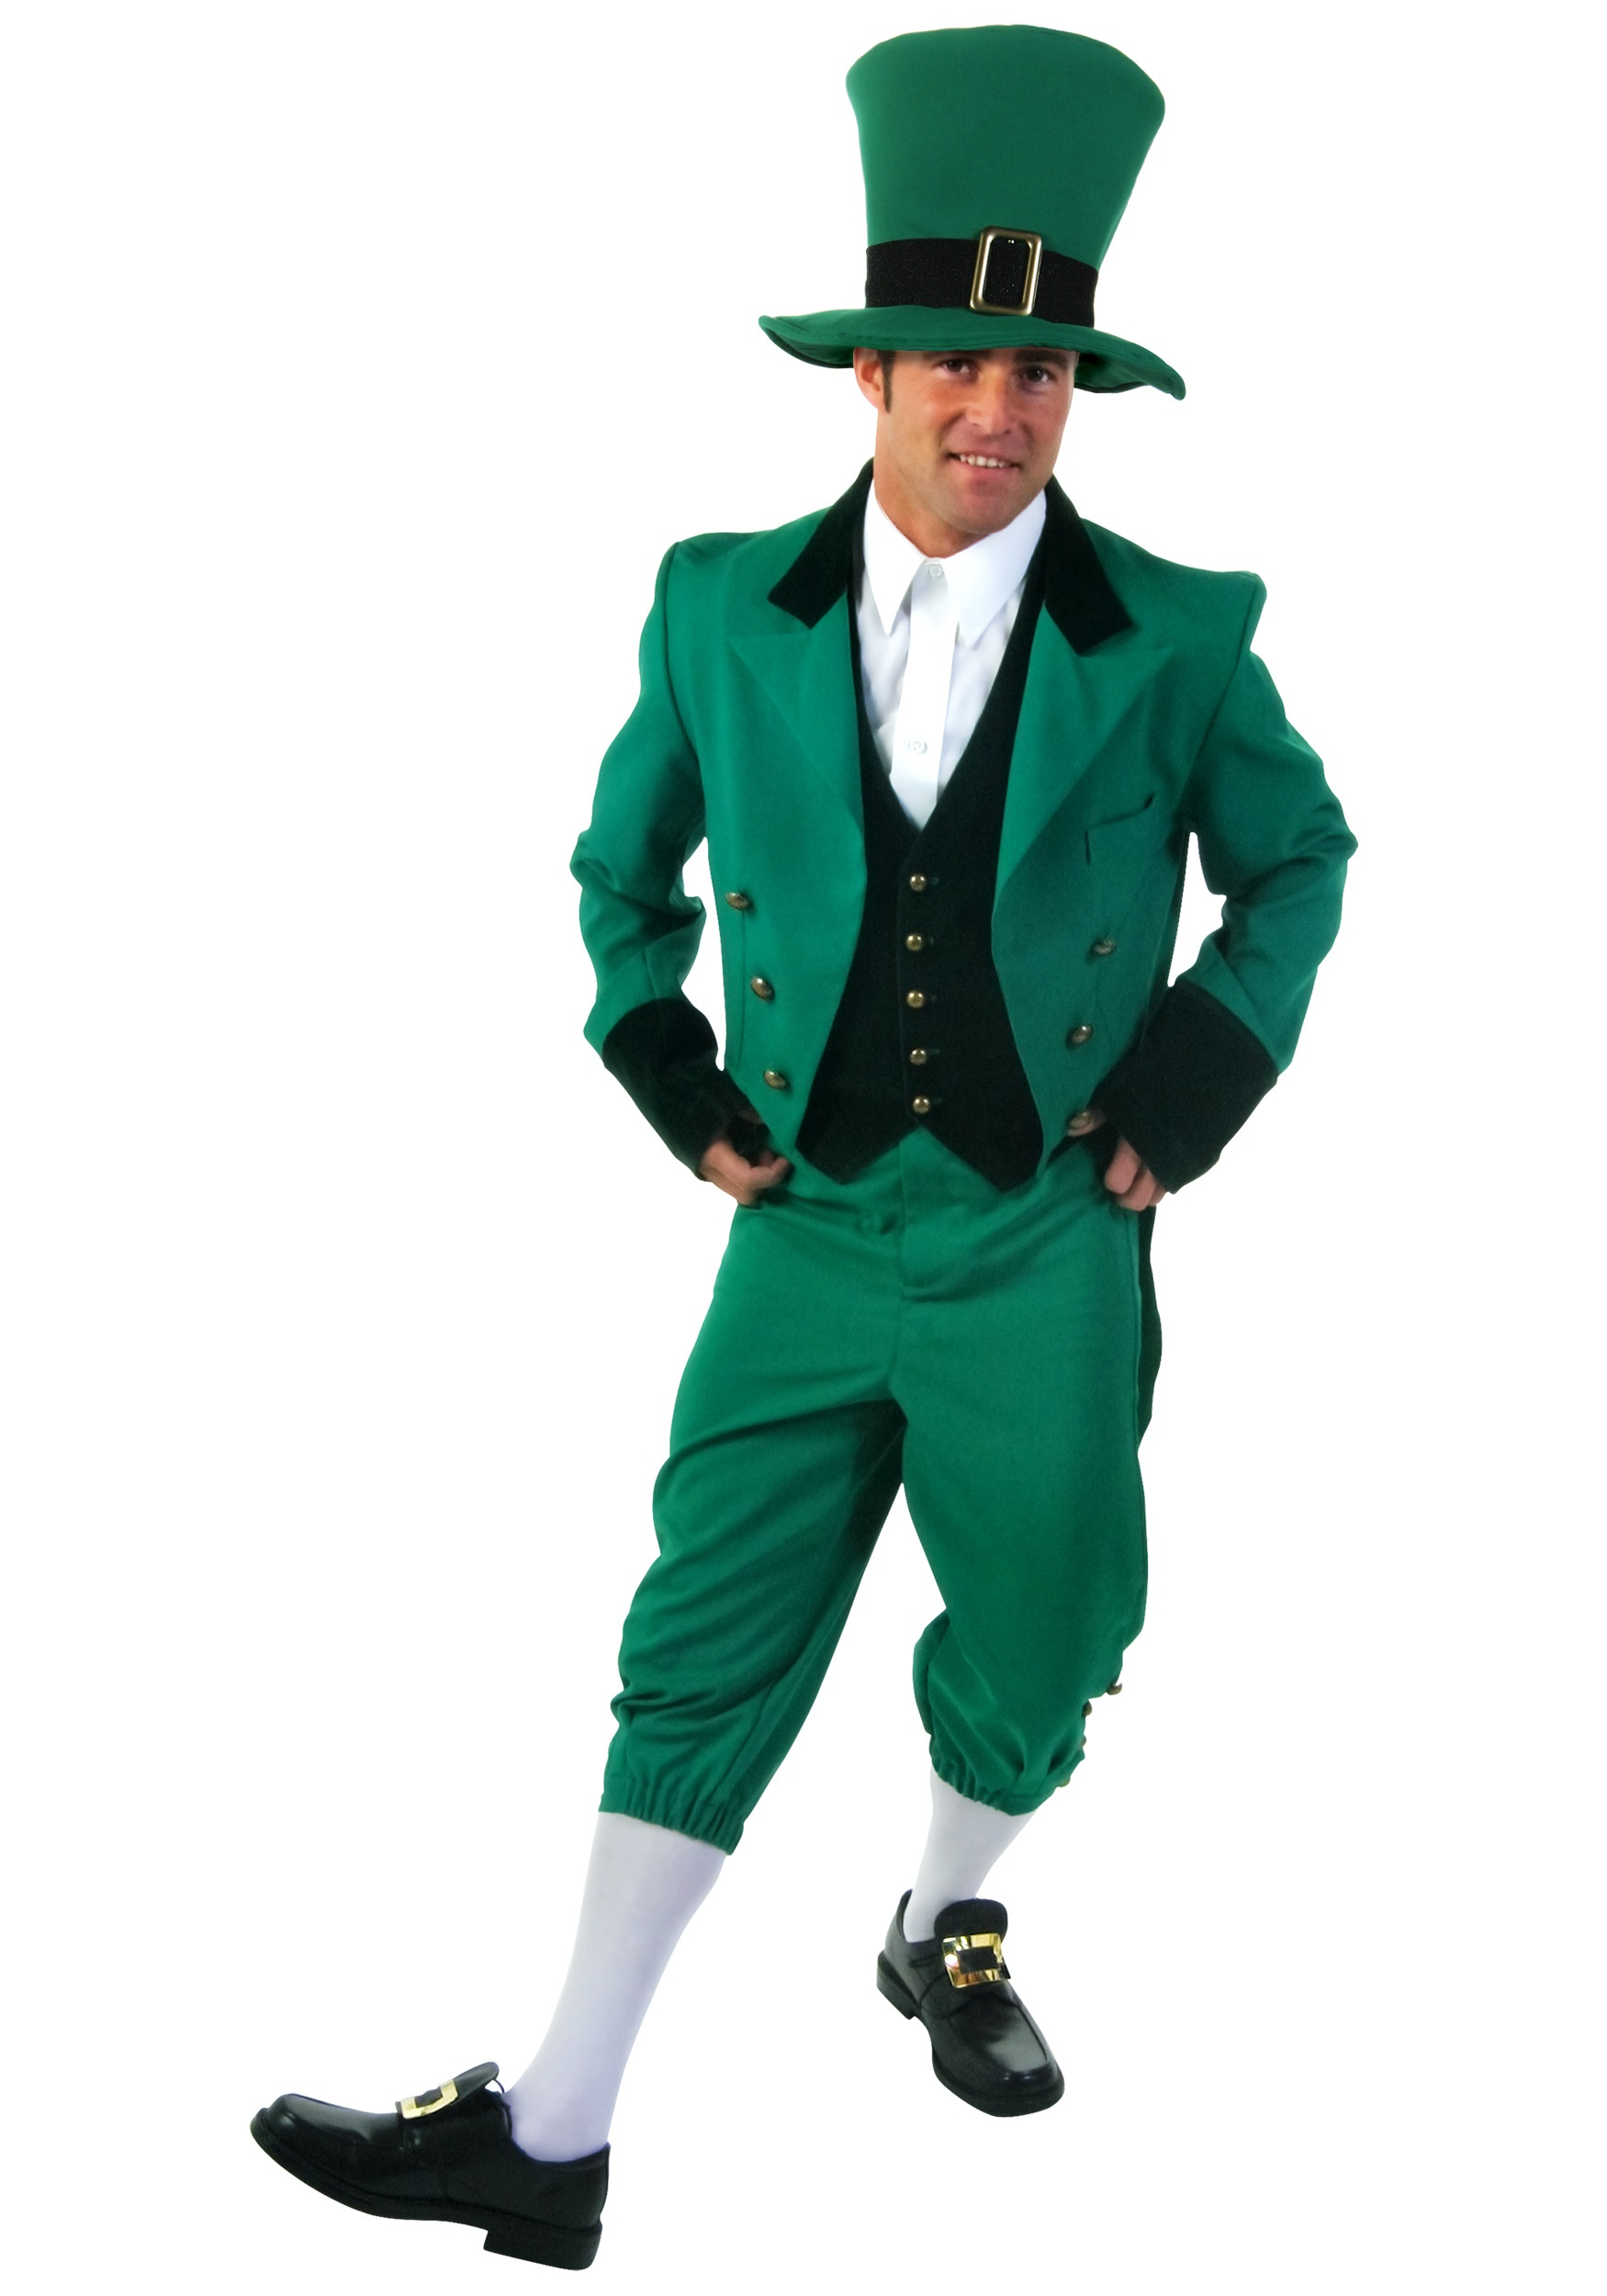 plus size leprechaun costume - halloween costume ideas 2018